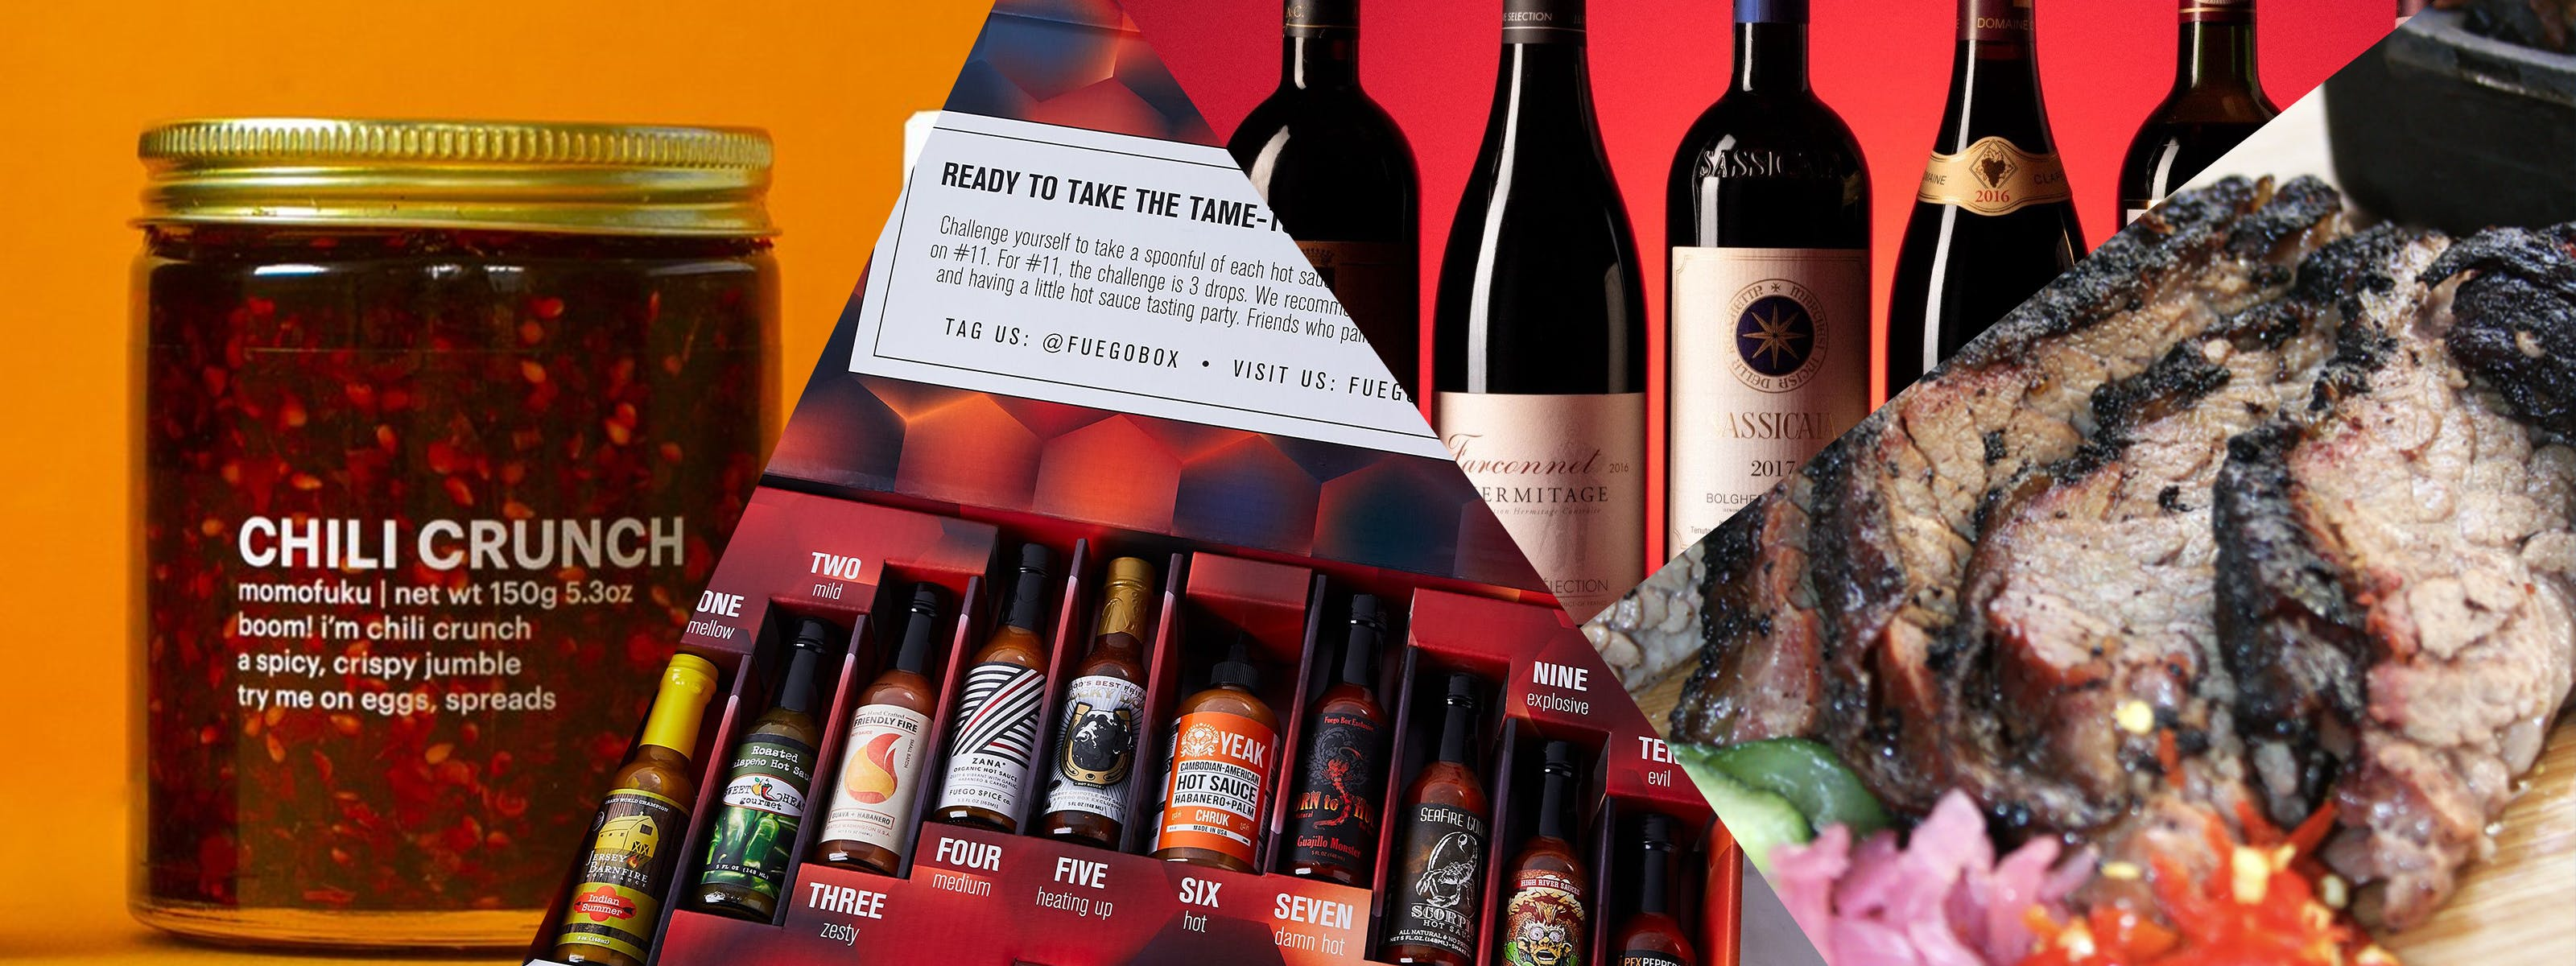 61 Unique Father's Day Gifts 2021 - Products - The Infatuation